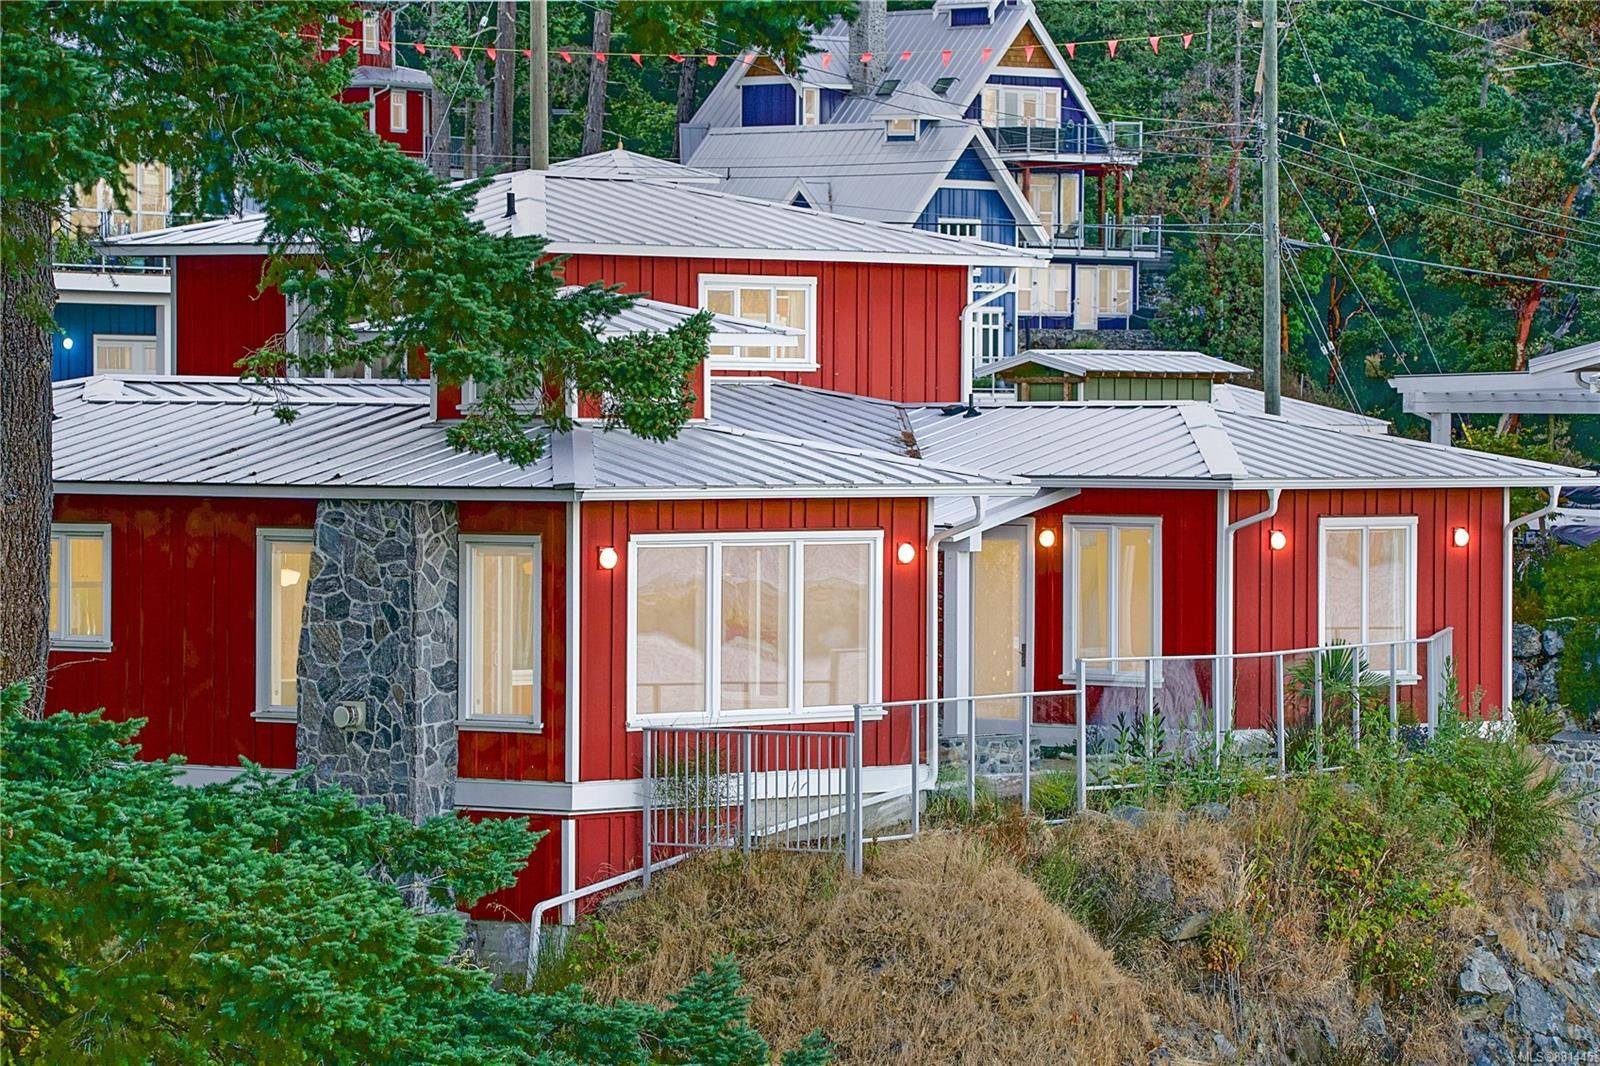 Main Photo: 129 Marina Cres in : Sk Becher Bay House for sale (Sooke)  : MLS®# 881445